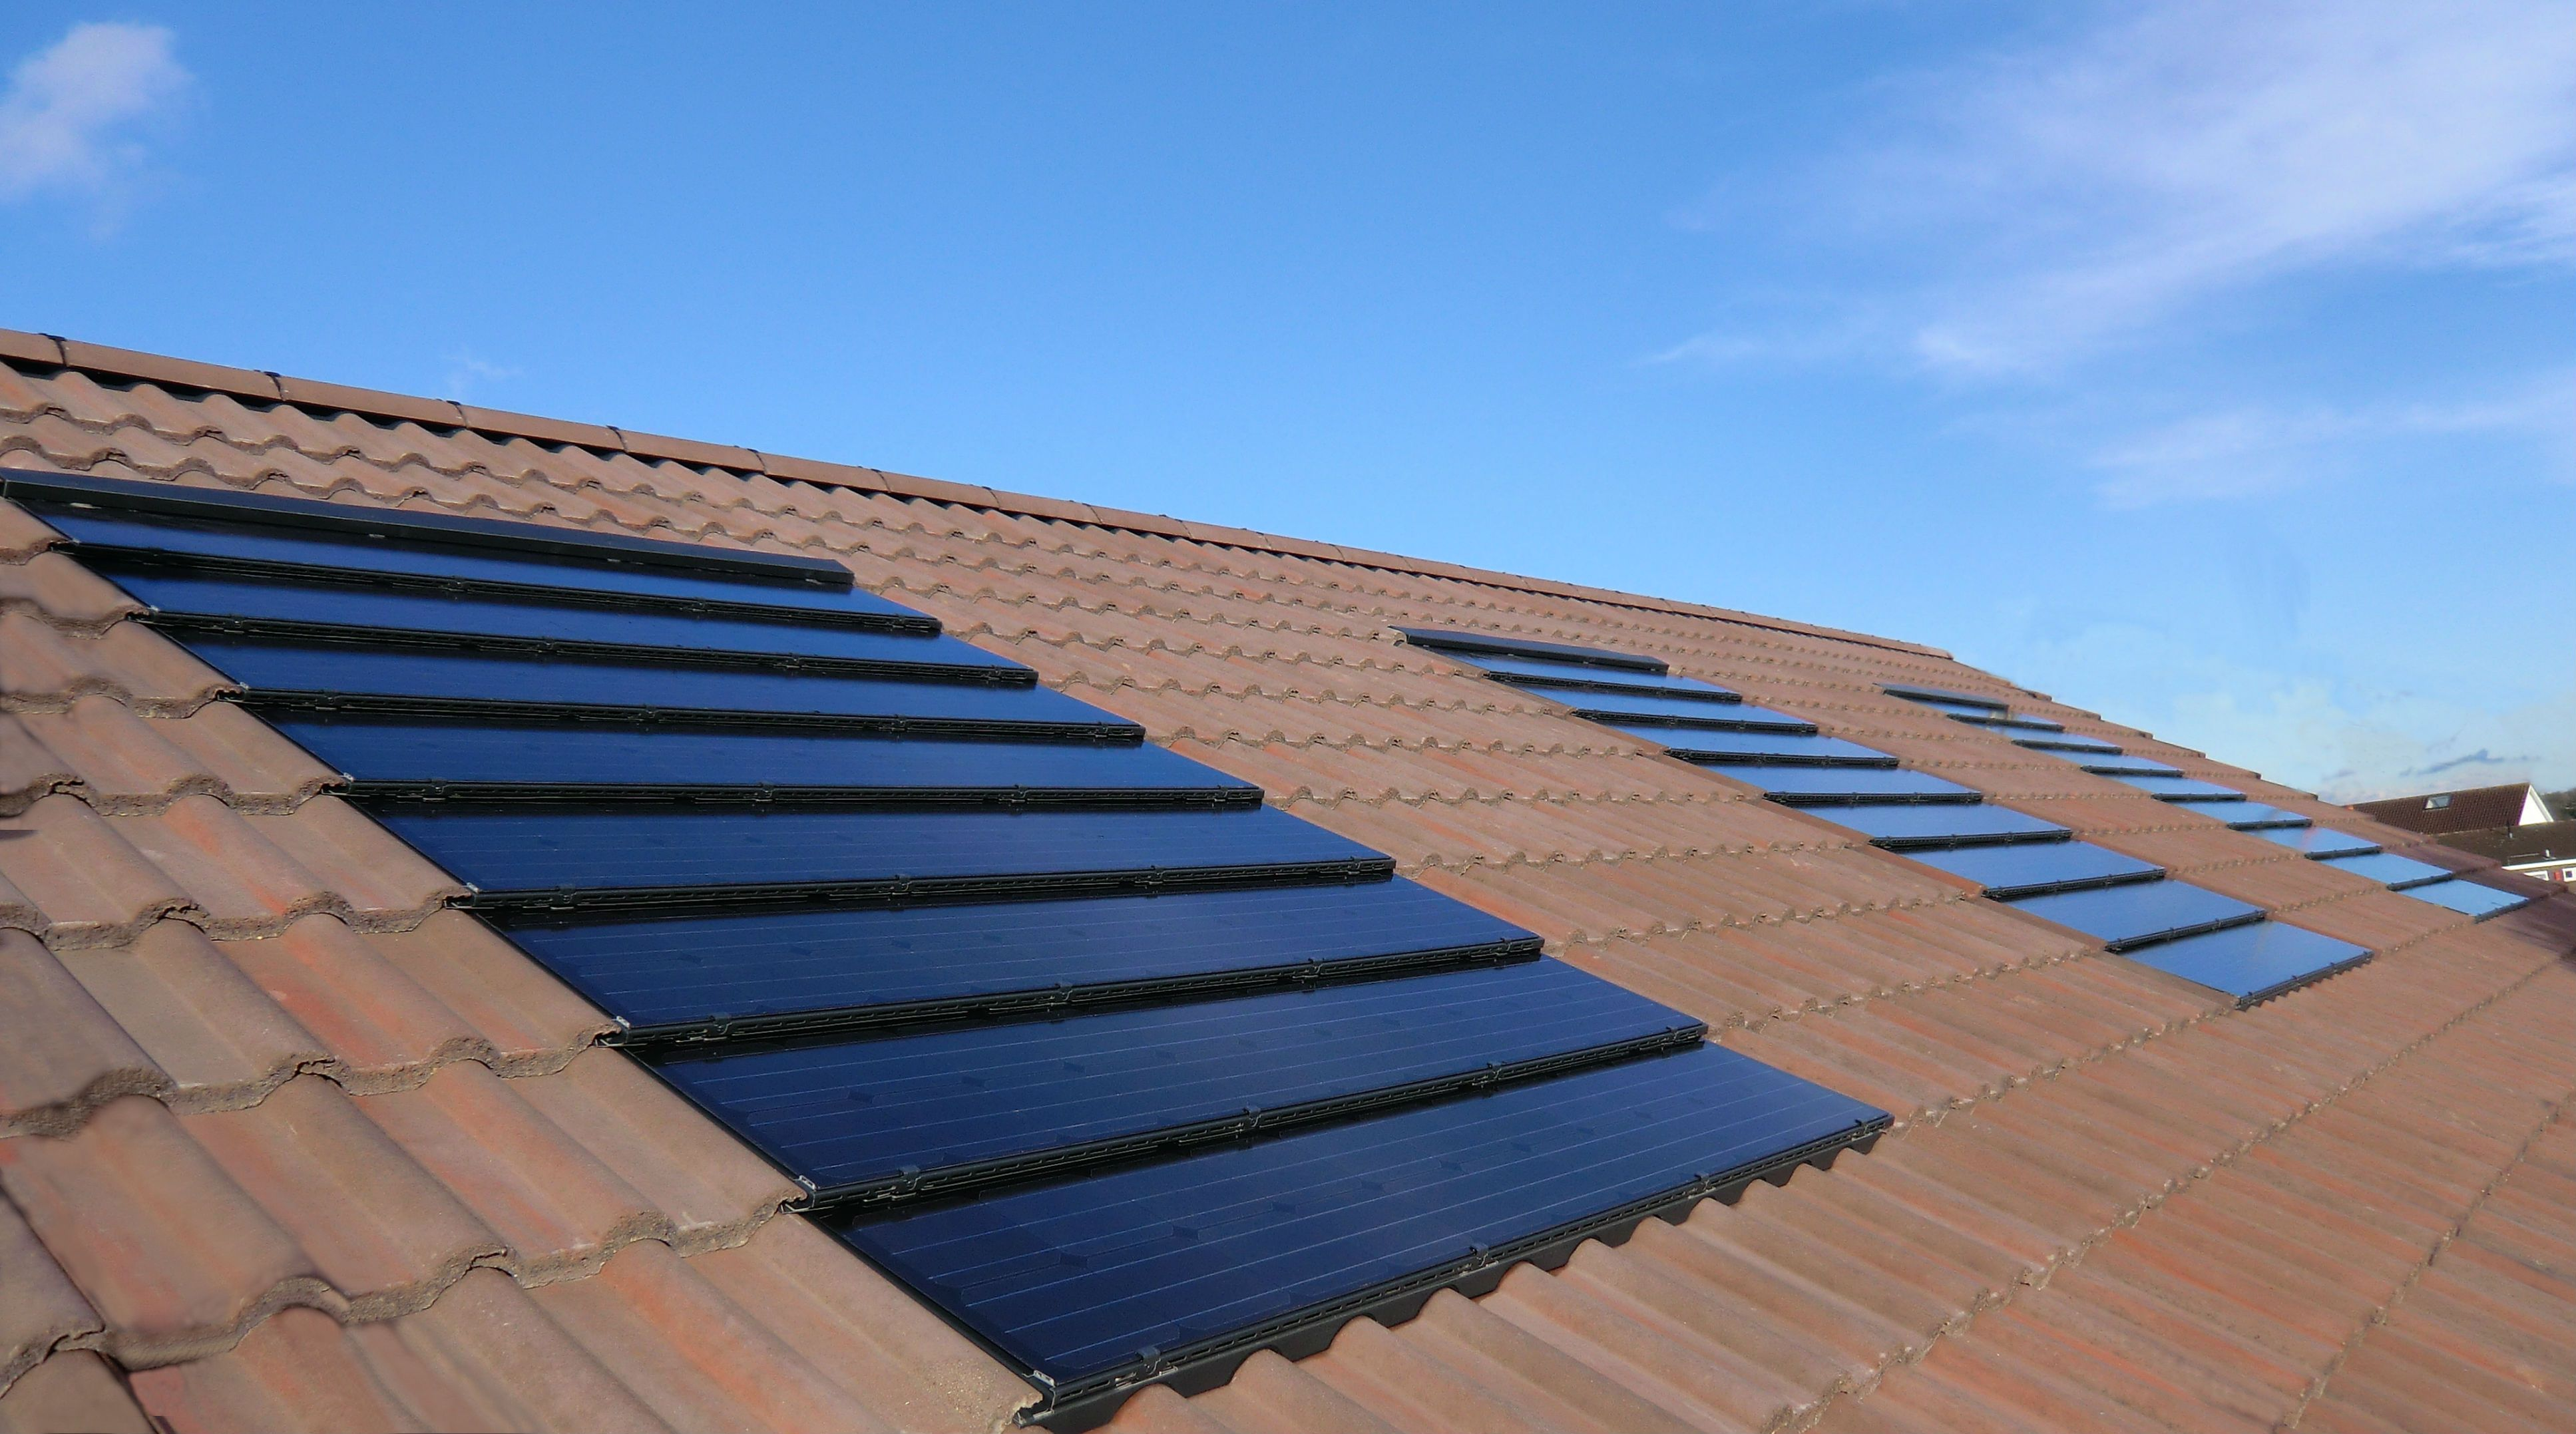 Self-build Solar Roof Tiles - Period Living